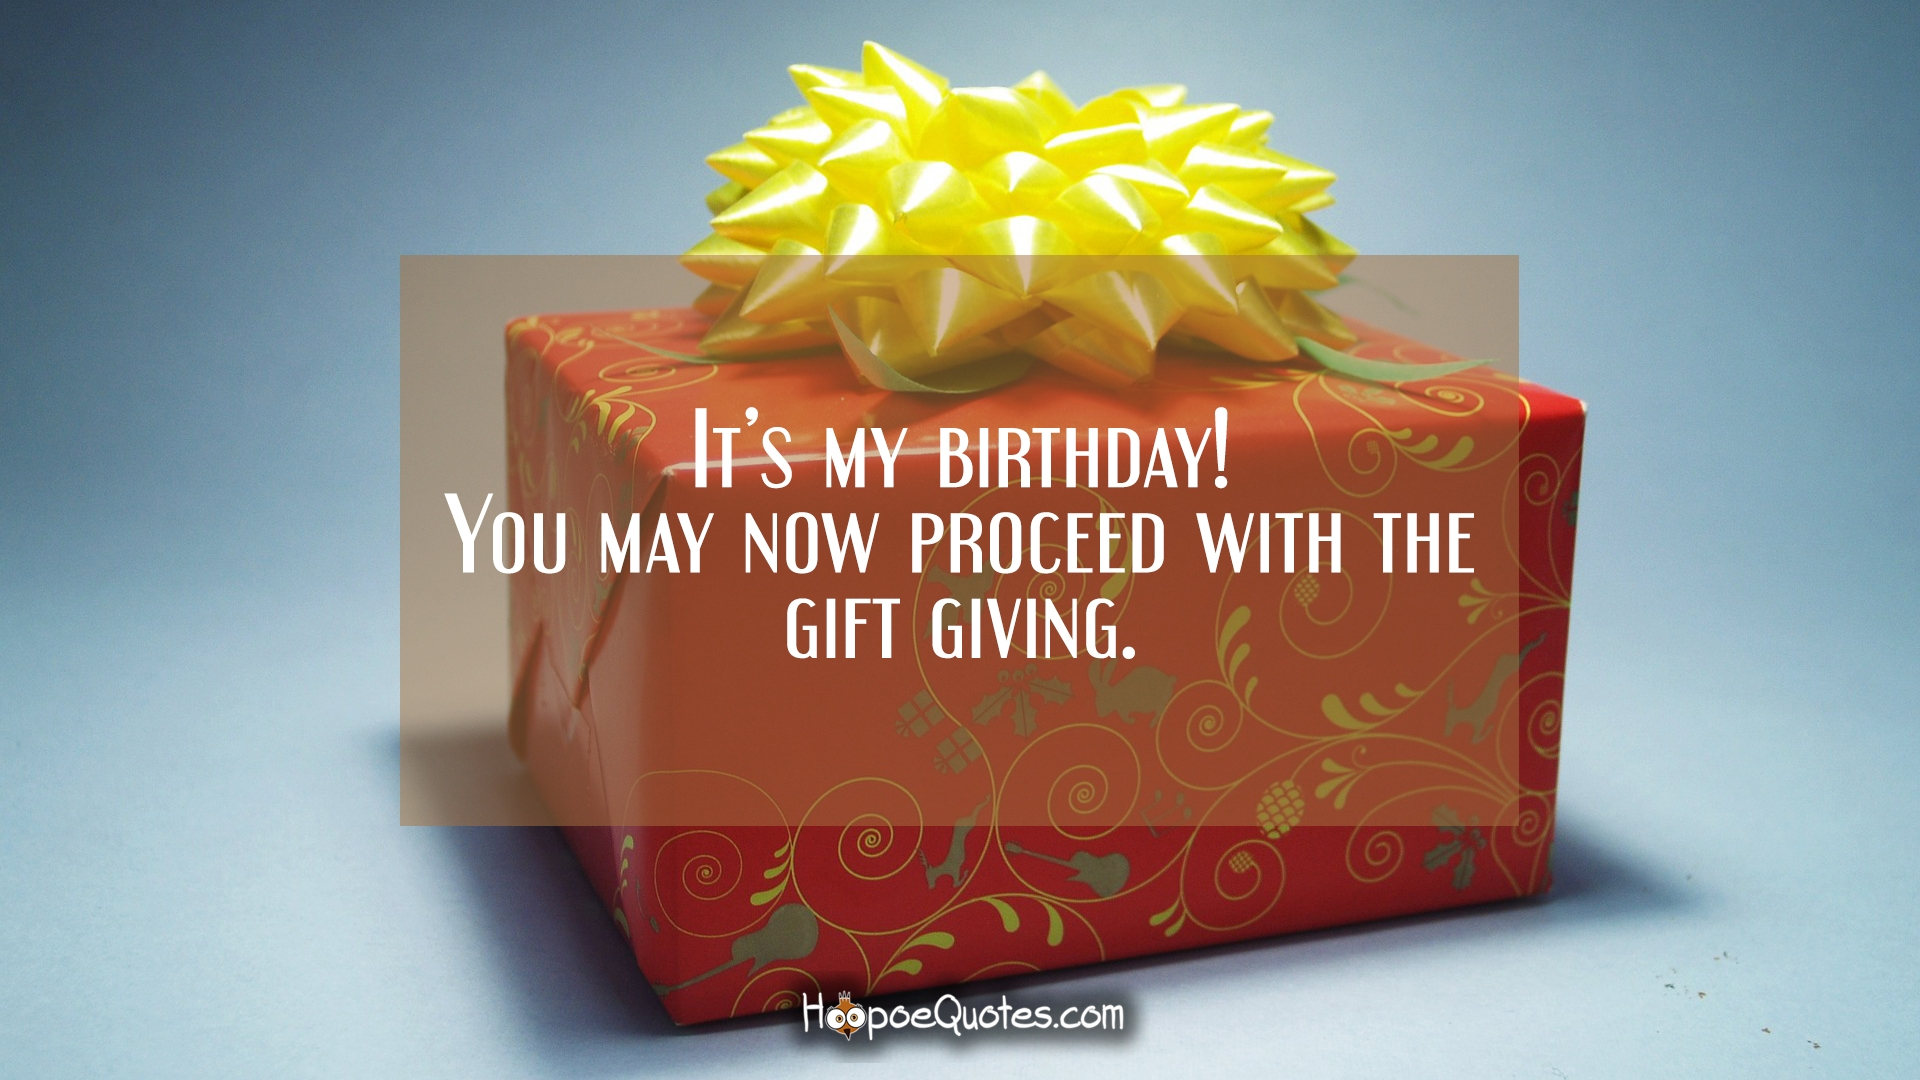 Happy birthday to me birthday wishes for myself with images its my birthday you may now proceed with the gift giving kristyandbryce Gallery